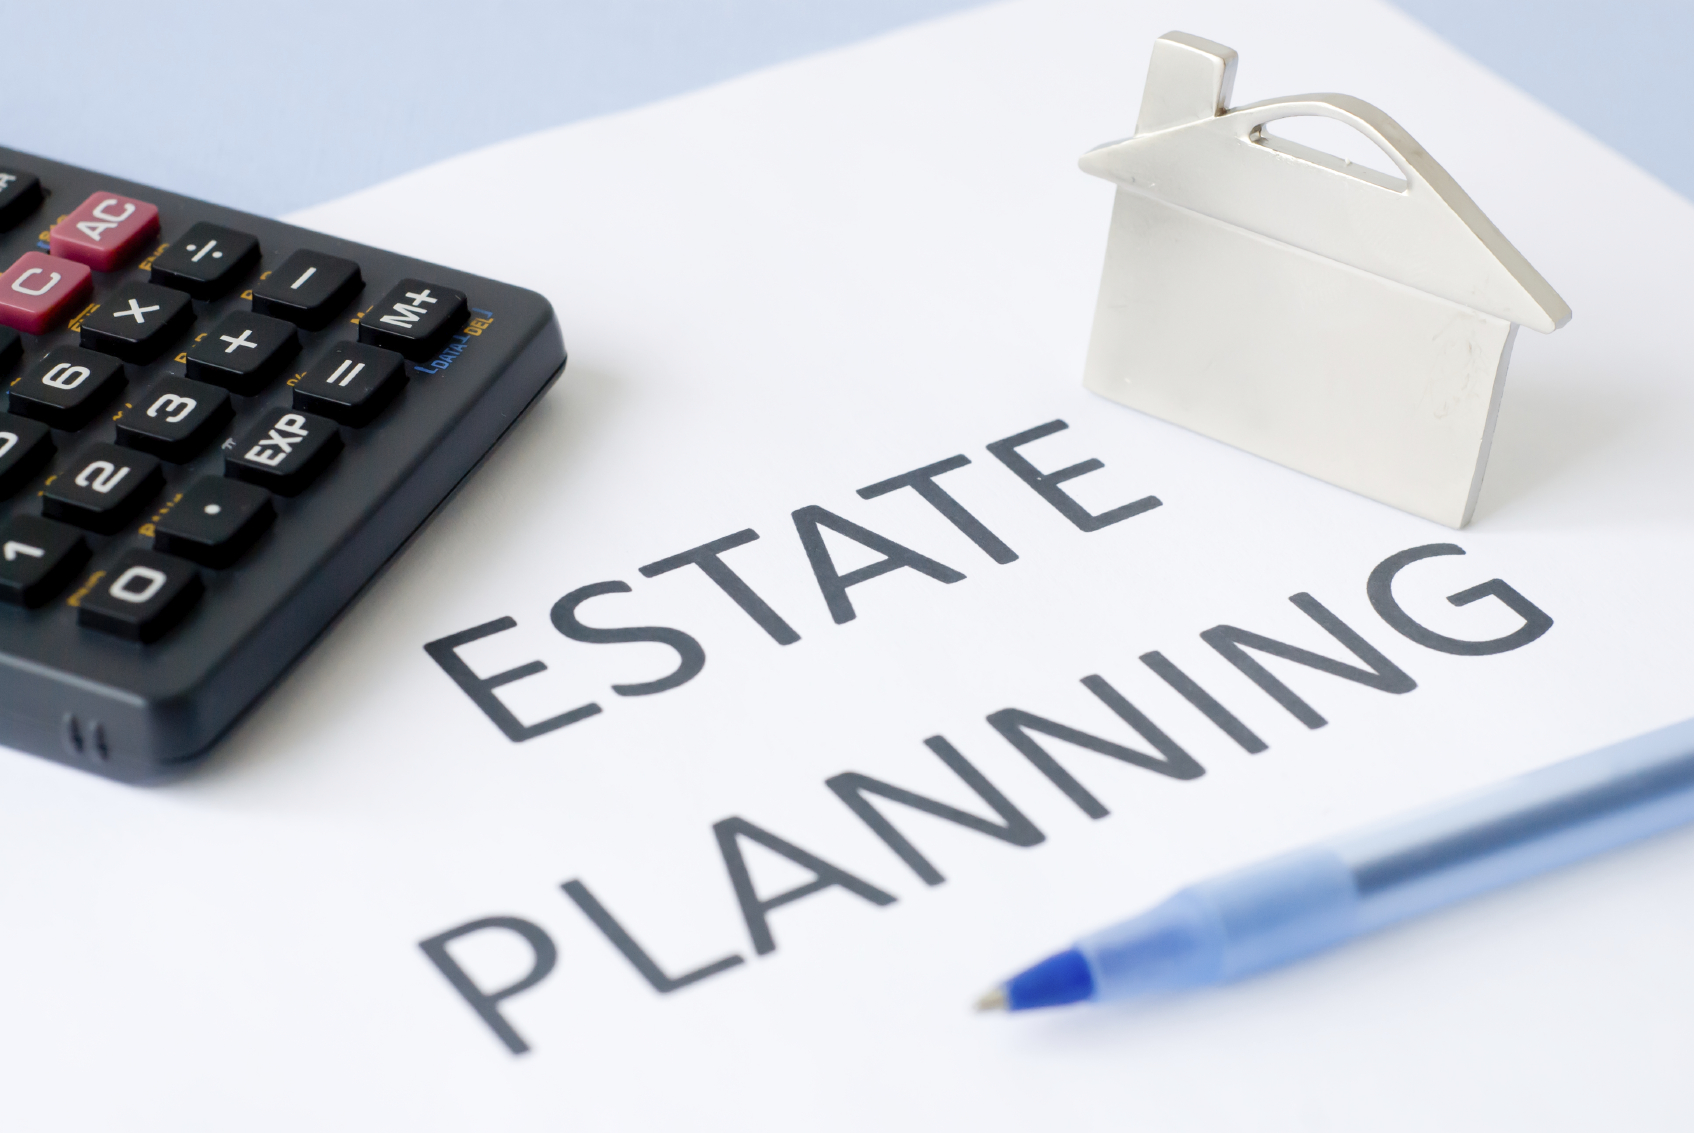 baron law, llc | the definition and role of an executor of an estate